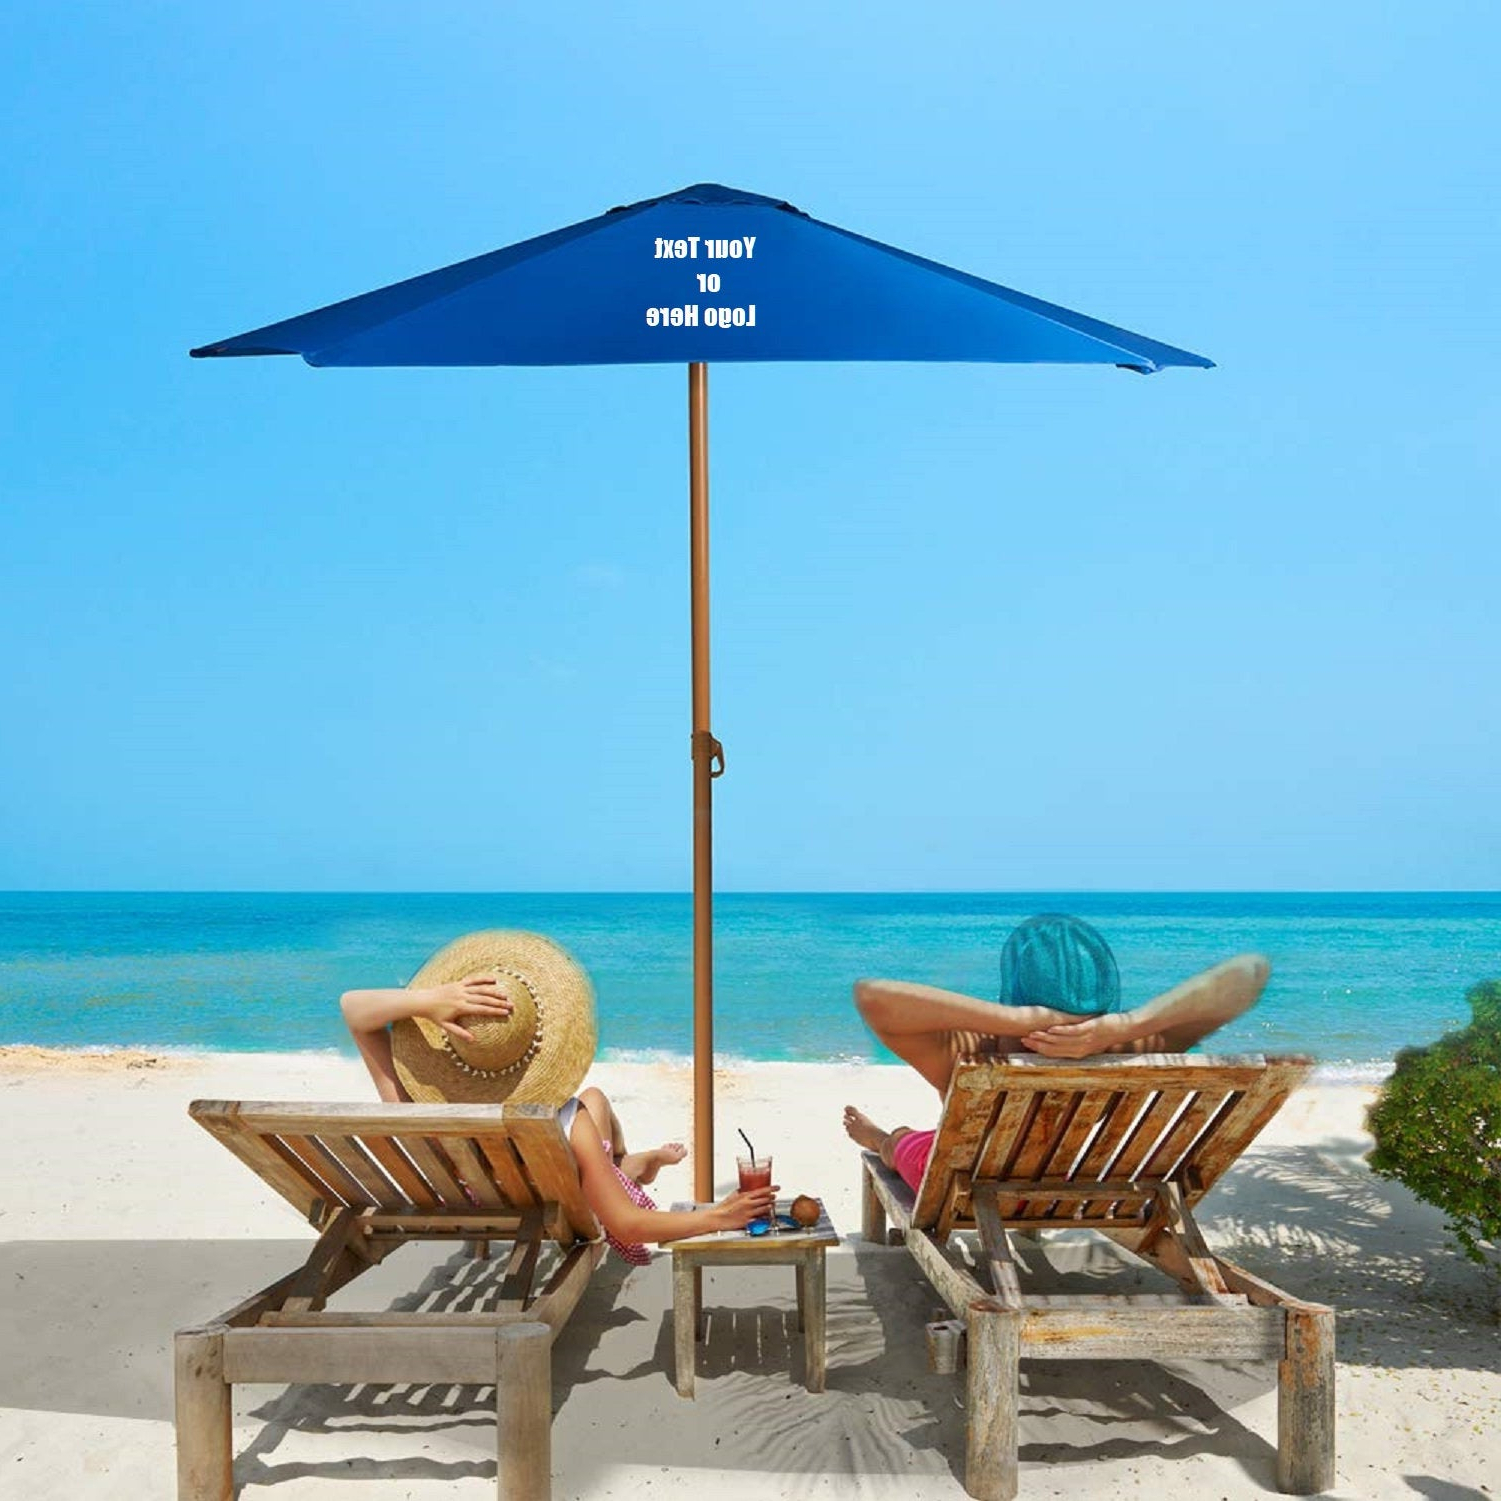 Most Recently Released Custom Personalized Sturdy 8Ft Shade Vented Patio Umbrella Aluminum Poles  With Polyester Canopy Portable For Beach Outdoor Uv Protection Within Bricker Market Umbrellas (Gallery 16 of 20)